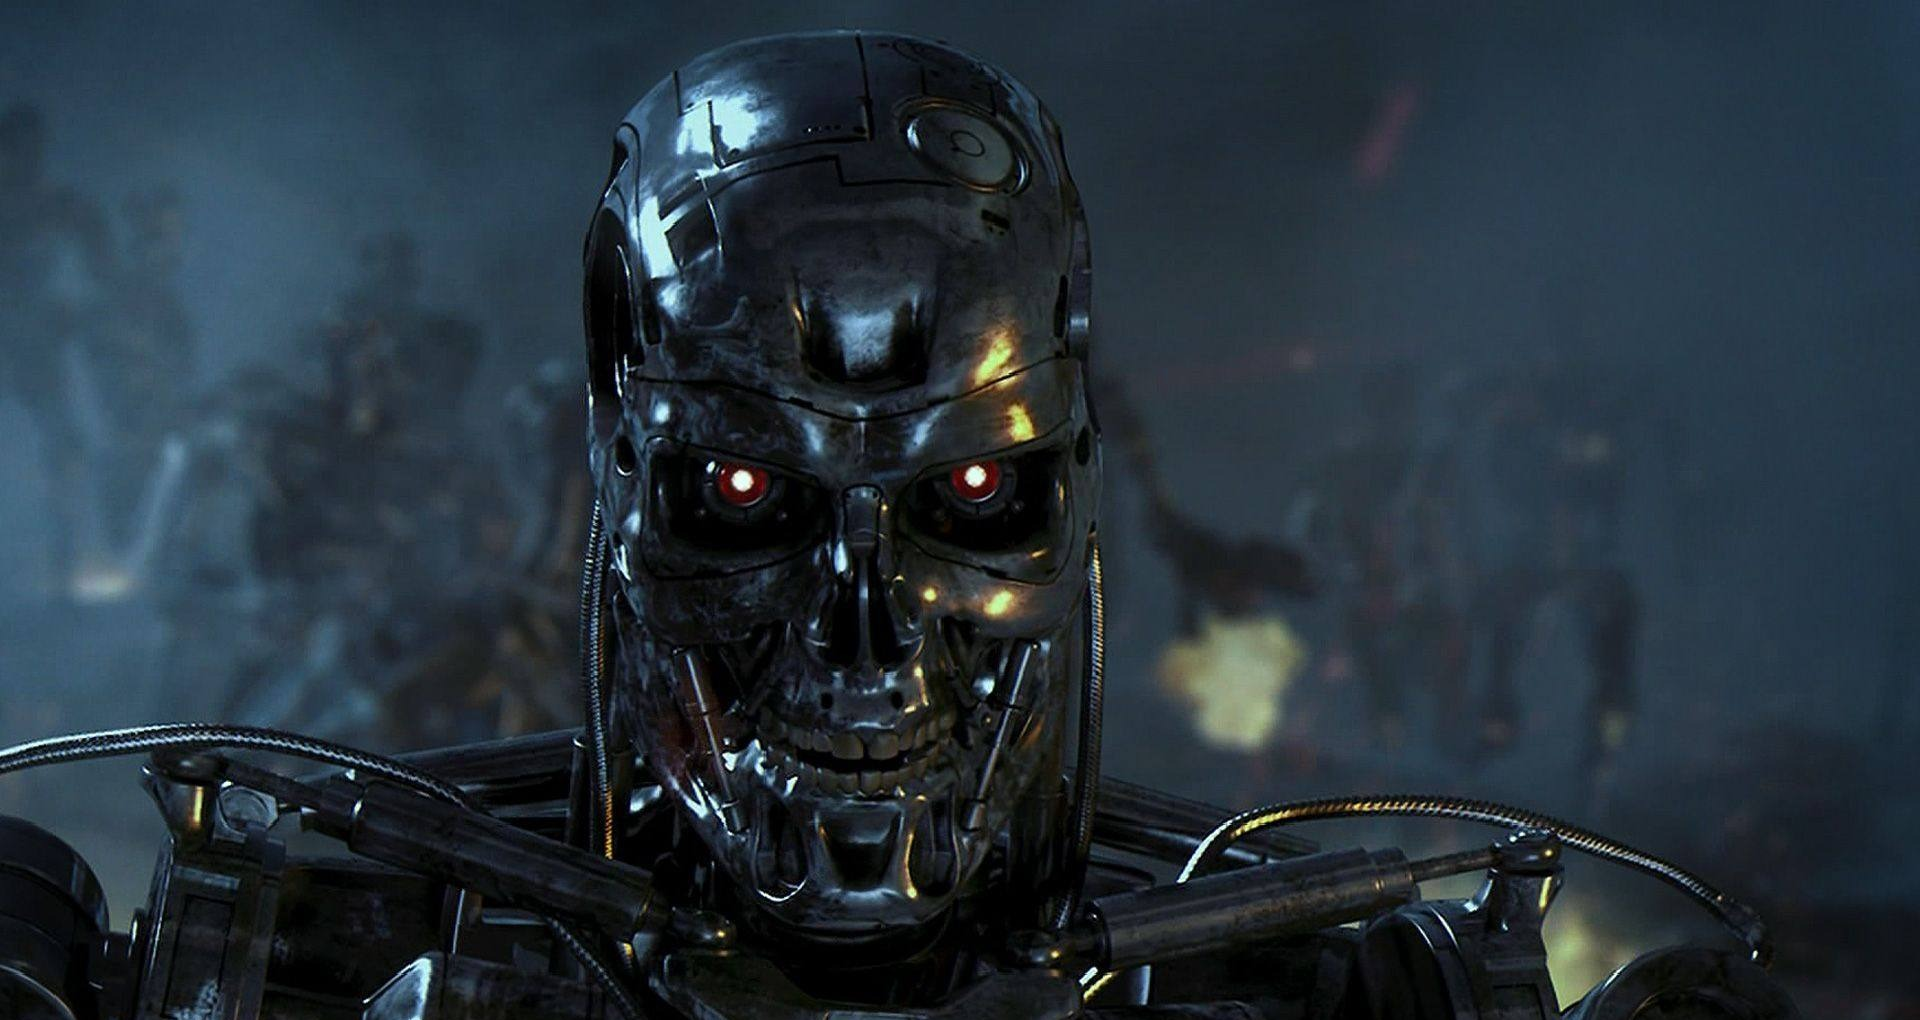 terminator genisys 2015 full movie download